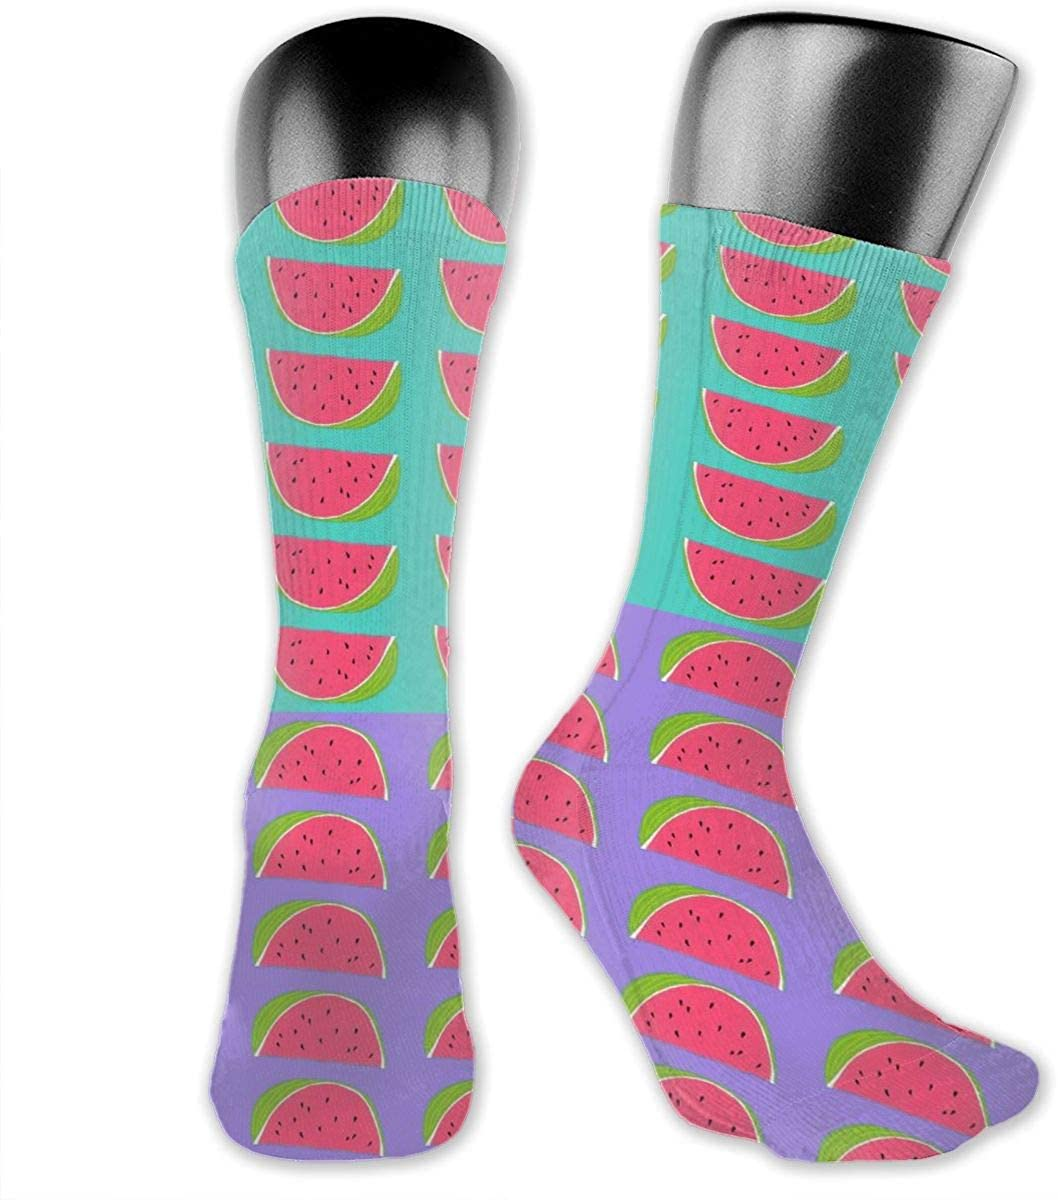 Athletic Hiking Socks Cushion Crew Max 54% OFF Compression So famous Fast Dry